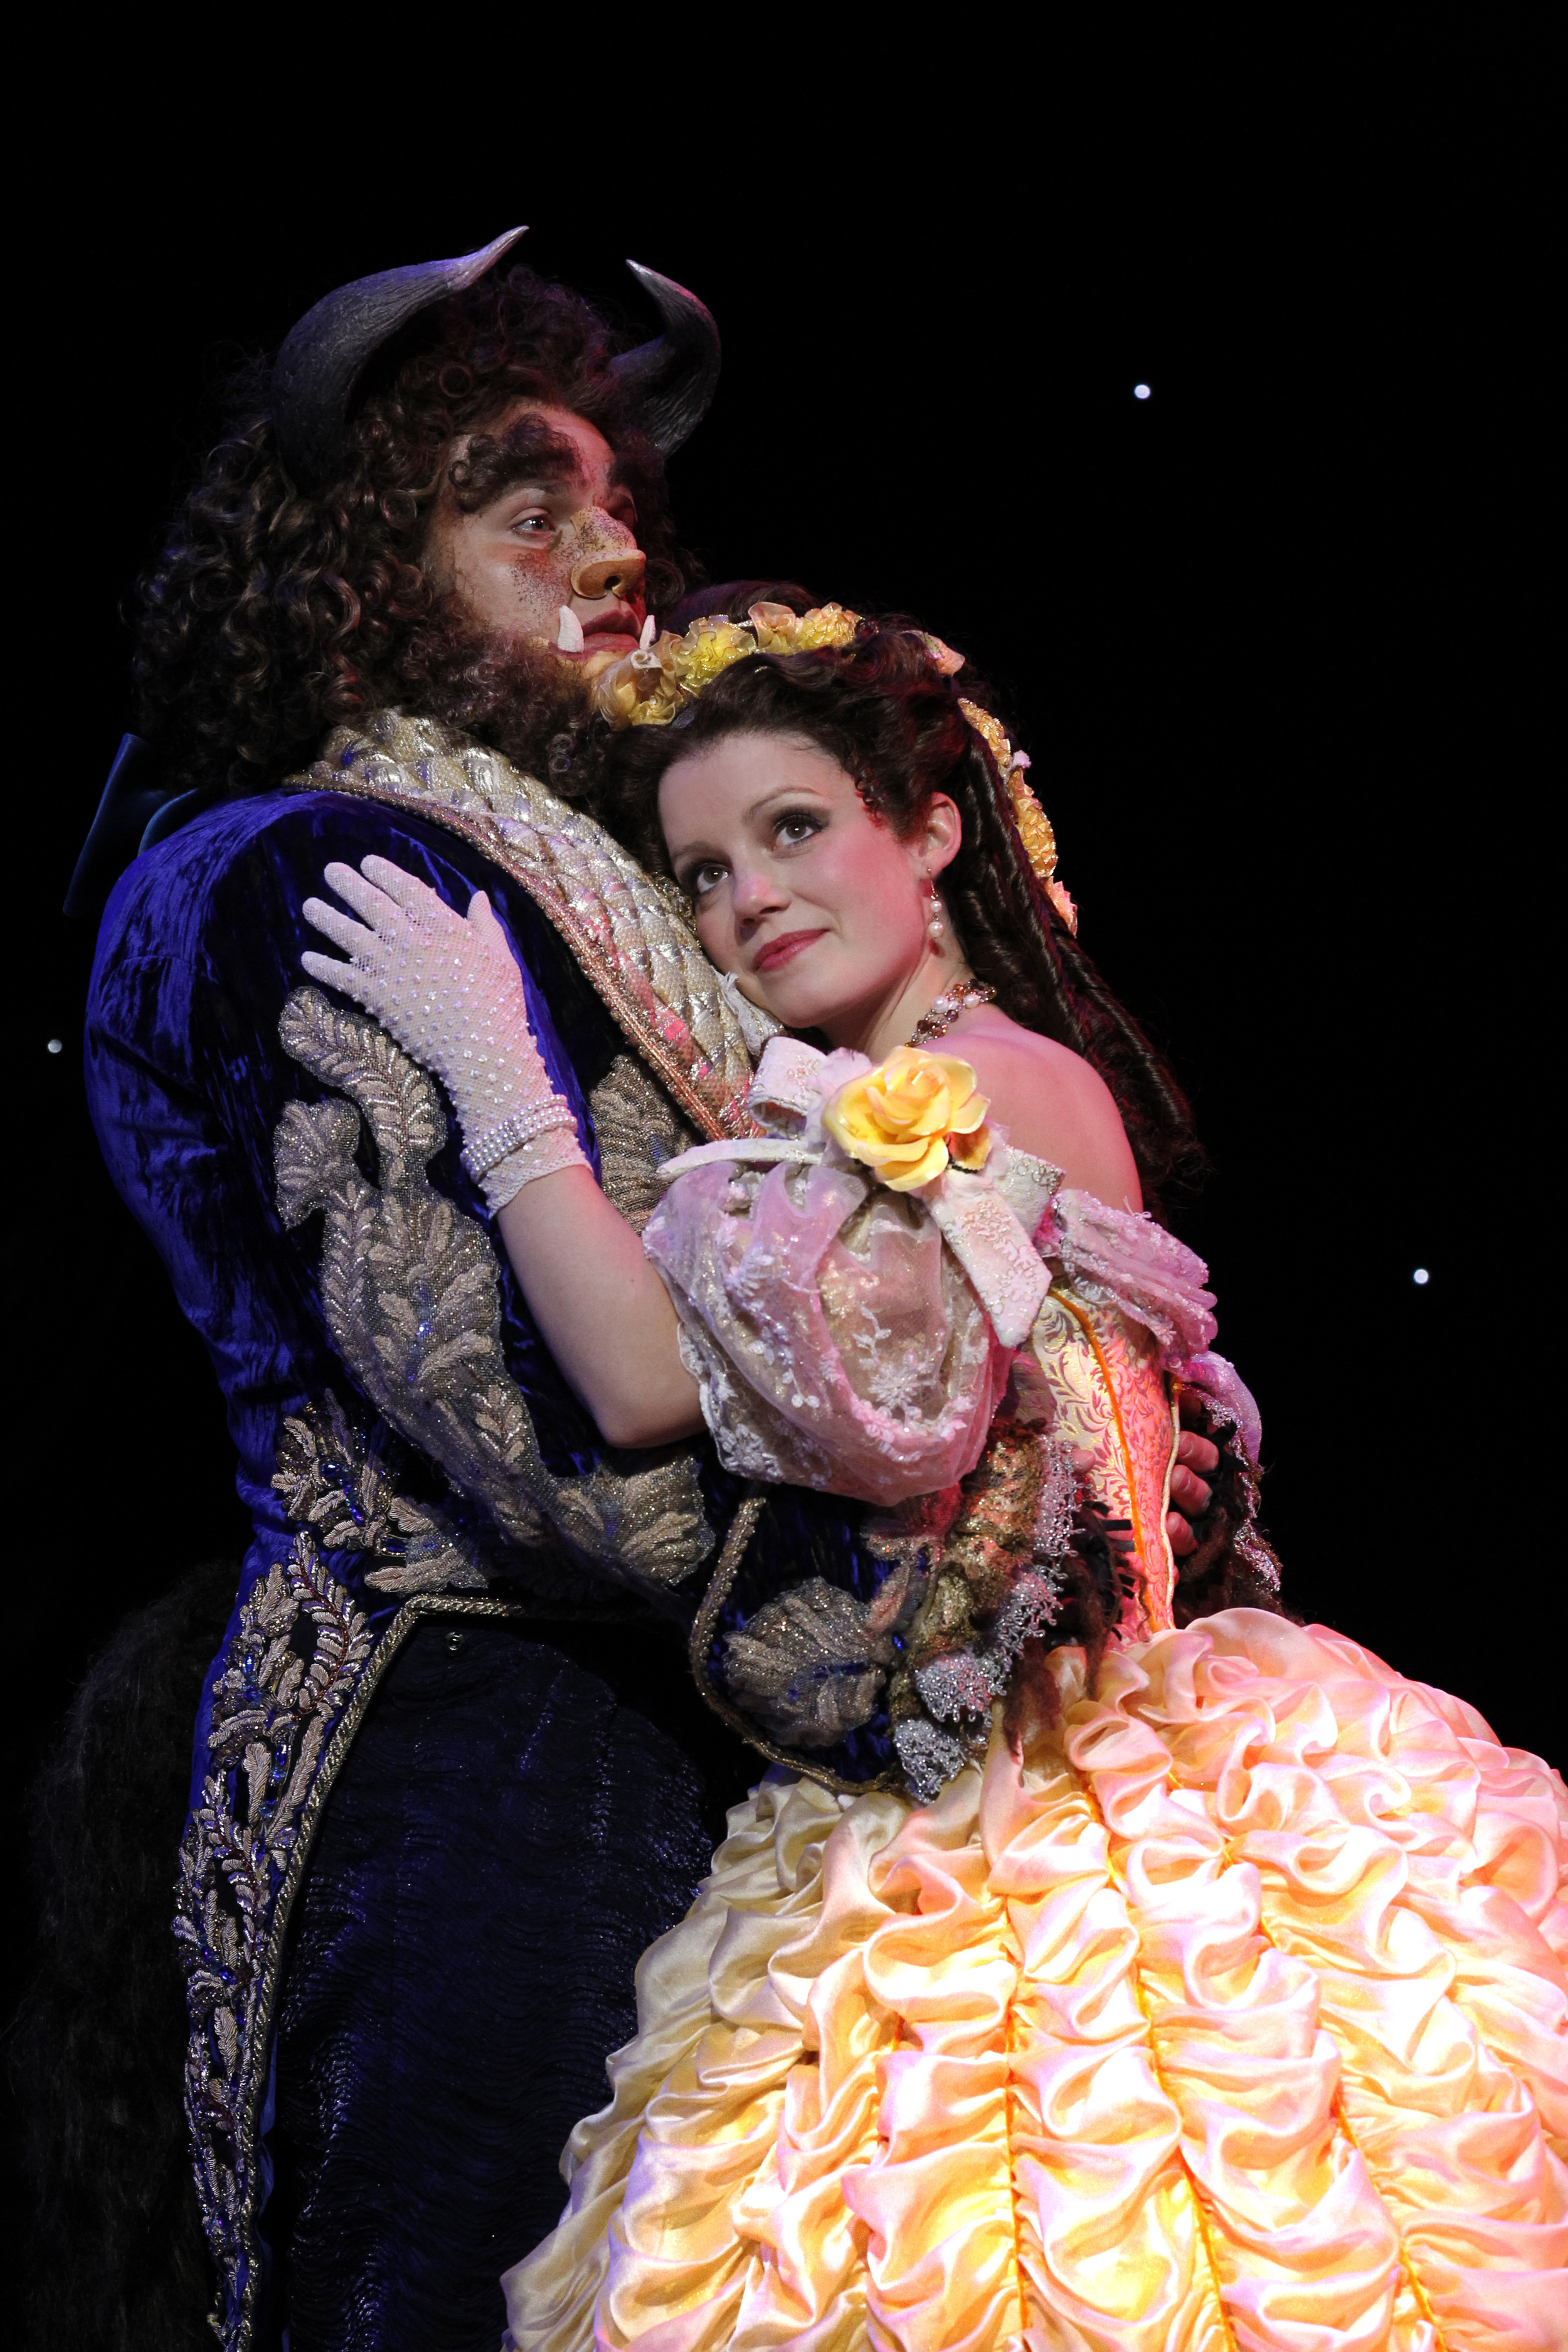 dane-agostinis-as-beast-and-emily-behny-as-belle-photo-by-joan-marcus.jpg